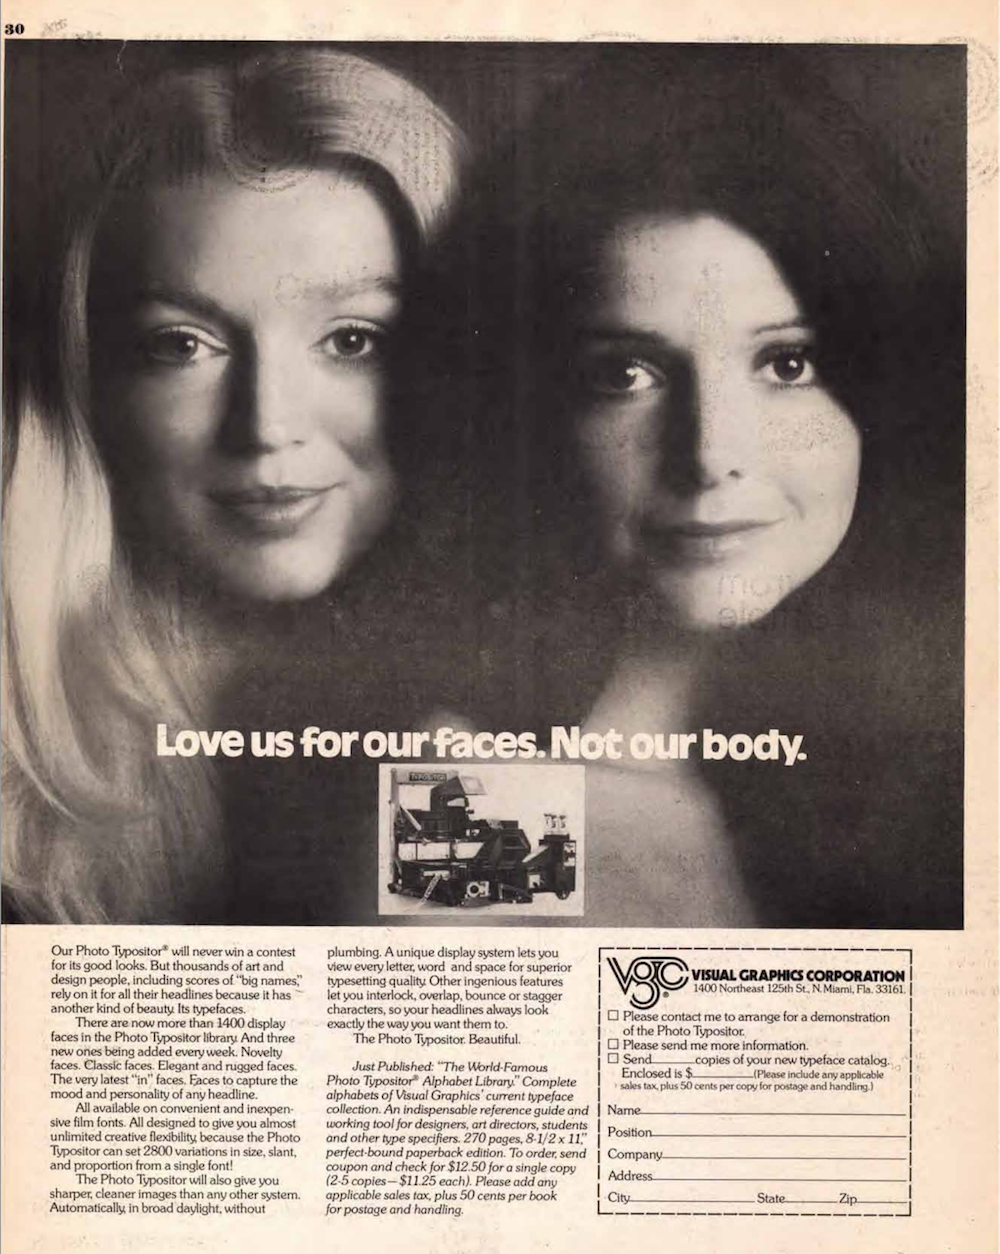 Ad from U&lc for a Photo Typositor showing a photograph of two beautiful women with the text: 'Love us for our faces. Not our body.'